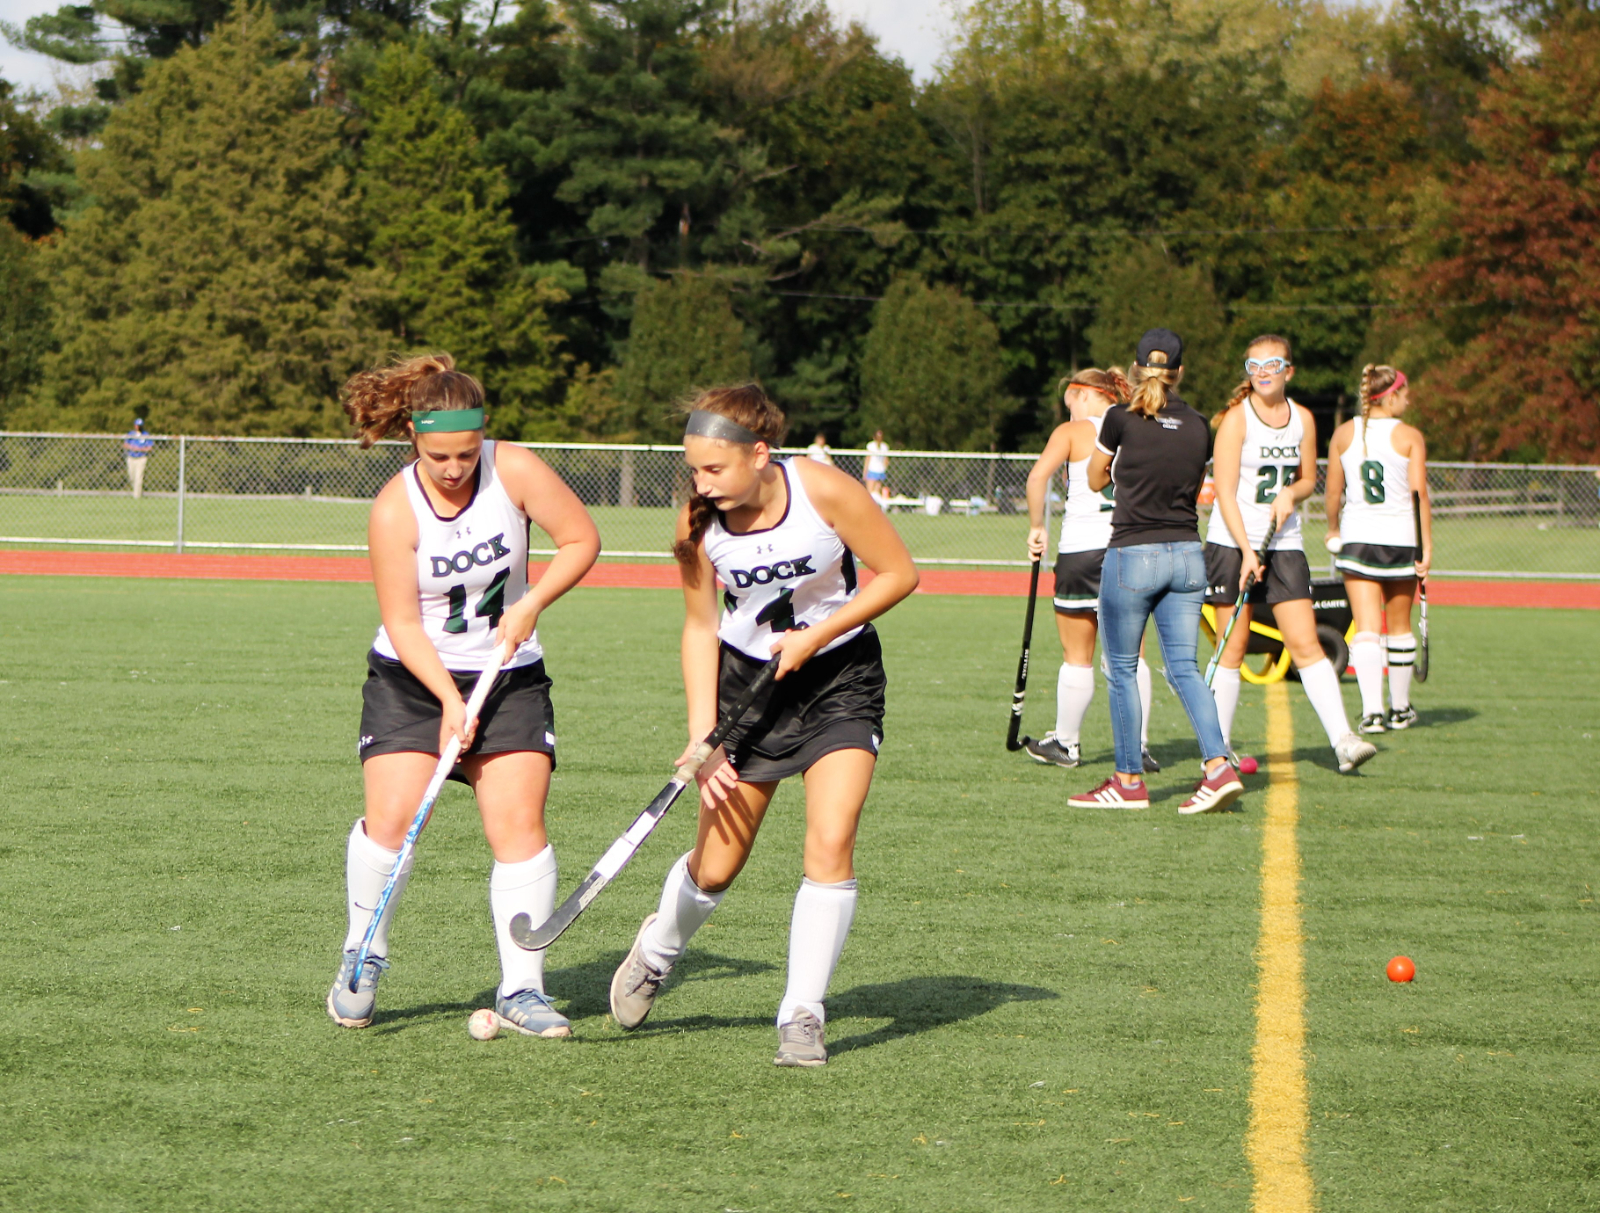 Girls Varsity Field Hockey vs. Delco